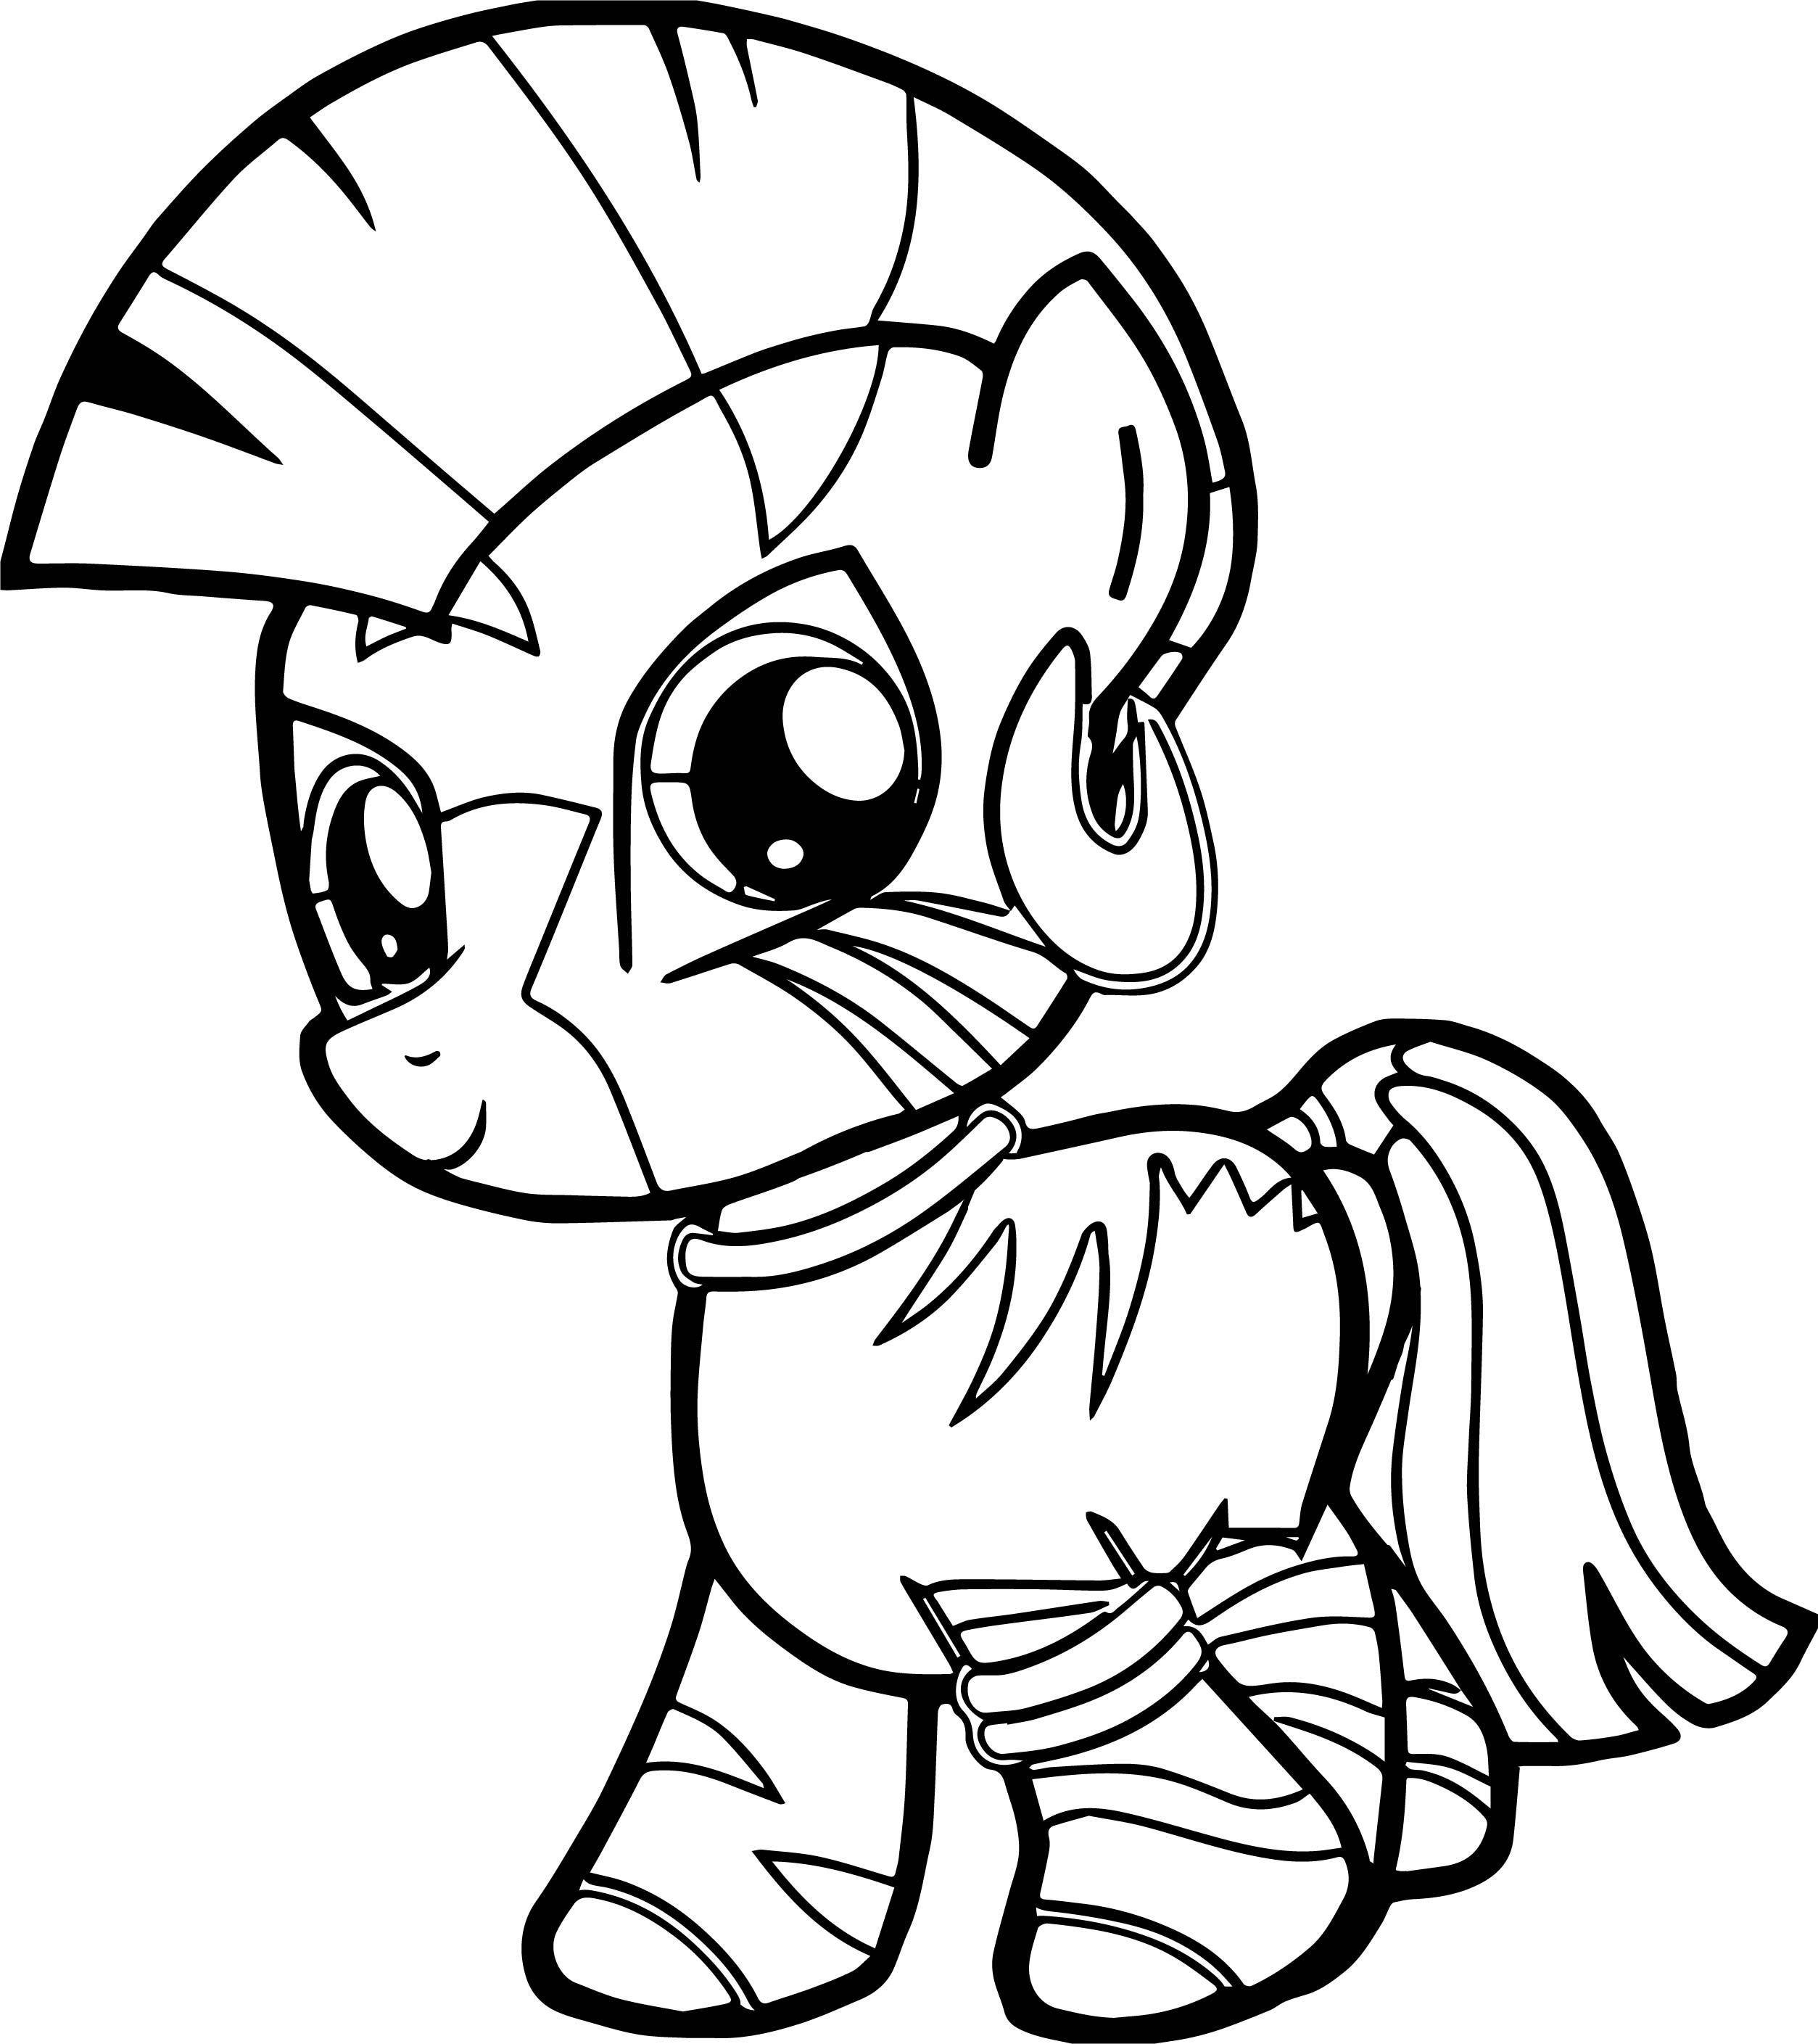 Mlp coloring pages fillies horses ~ Zecora Filly Very Cute Baby Horse Coloring Page ...